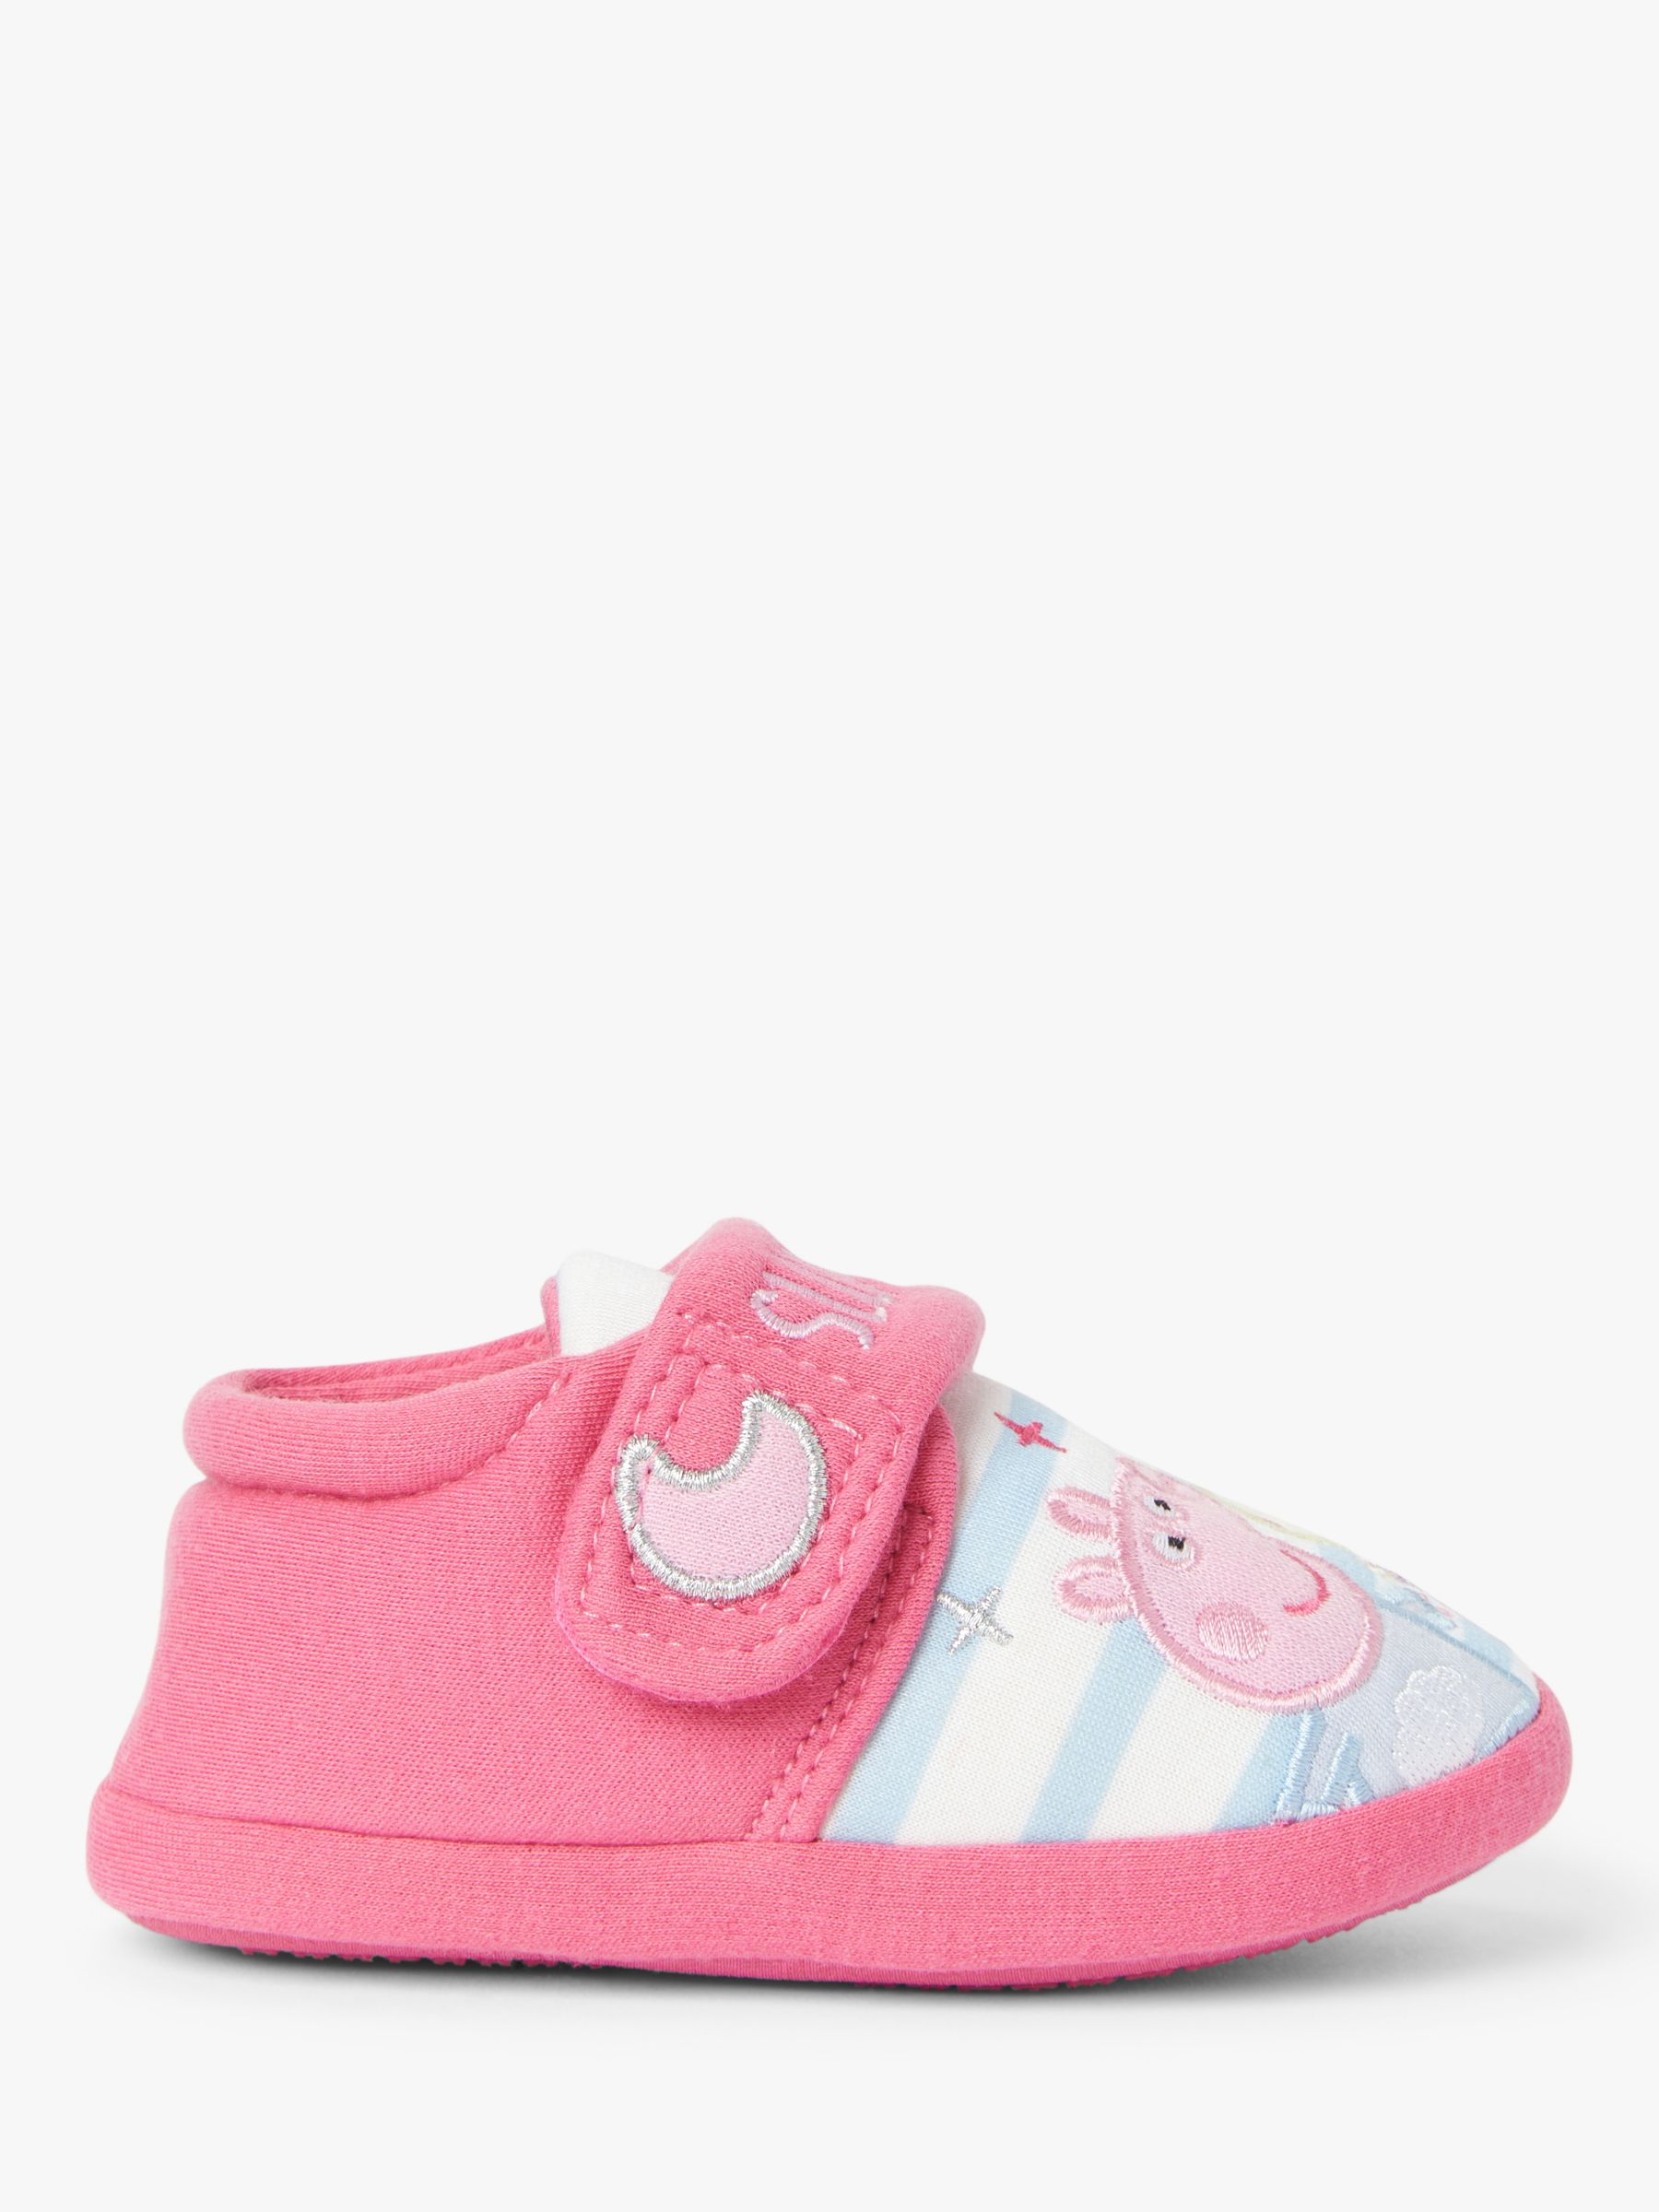 Peppa Pig Peppa Pig Children's Peppa Slumber Slippers, Pink